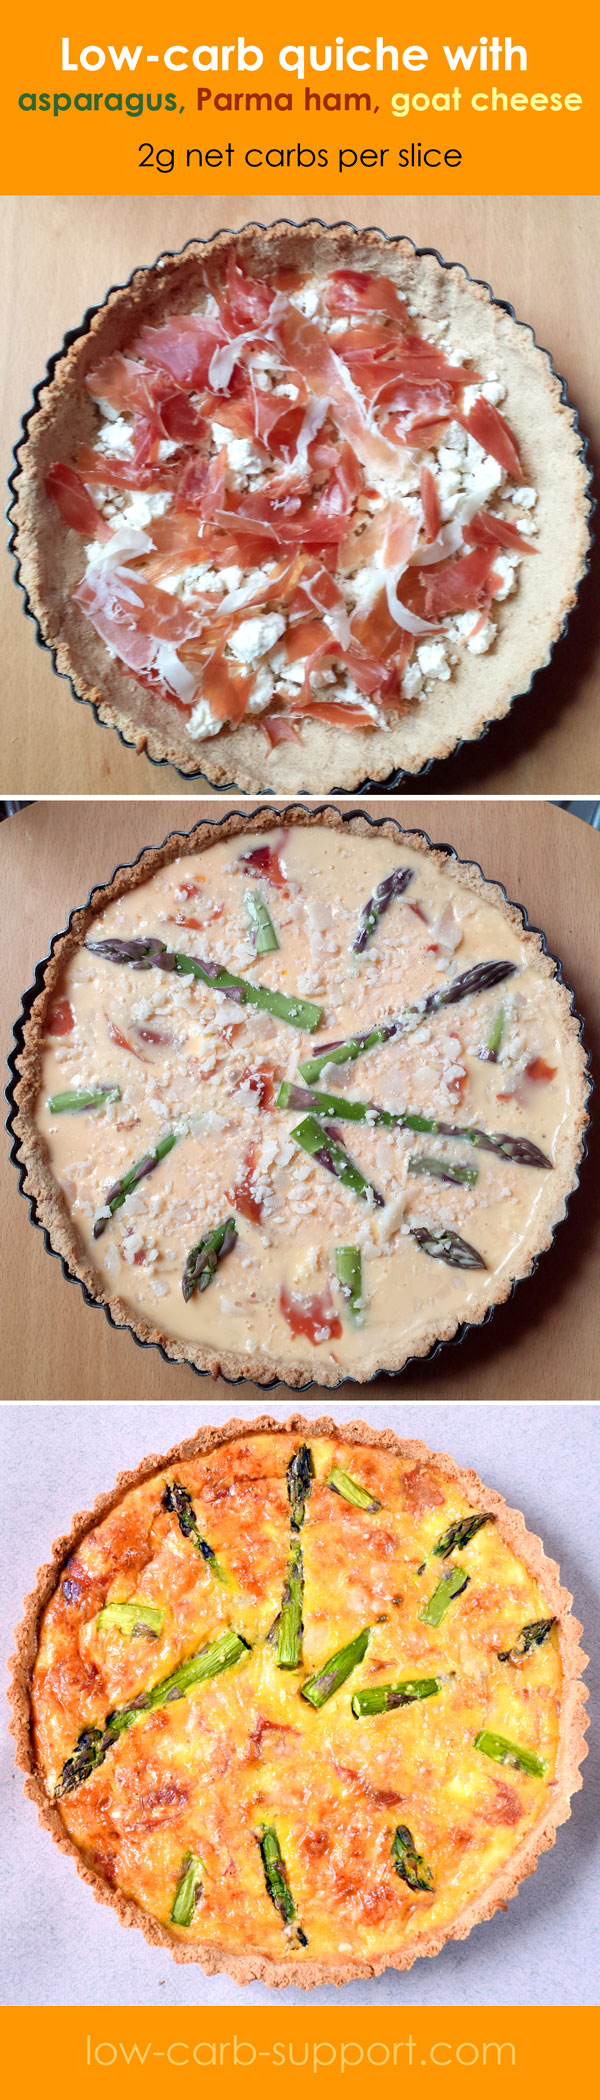 Low-carb quiche with asparagus, goat cheese and Parma ham - 2g net carbs per serving